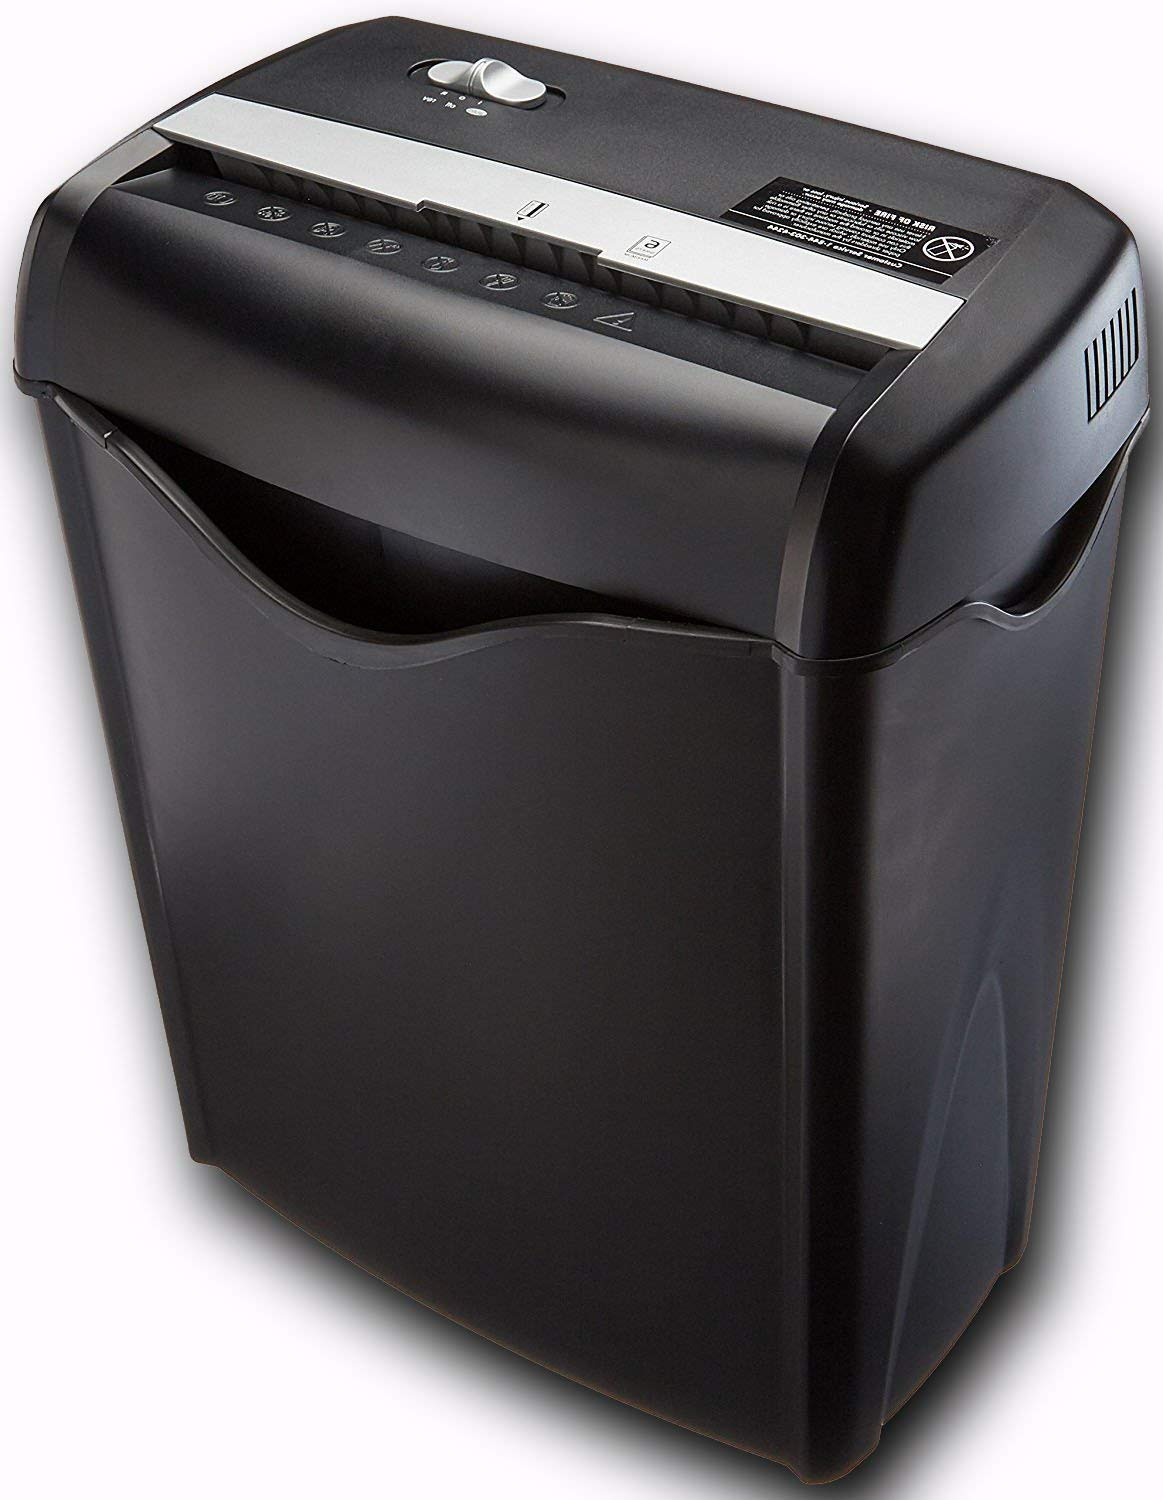 Cross Cut Paper Credit Card Shredder 6 Sheet 7/32 by 1-27/32 inches 8.7 inch Wide Paper Feed 3.8 Gallon Bin Thermal Protectio Auto Shut off 2 Minute Continuous Run Time 30 Minute & ebook by big_store